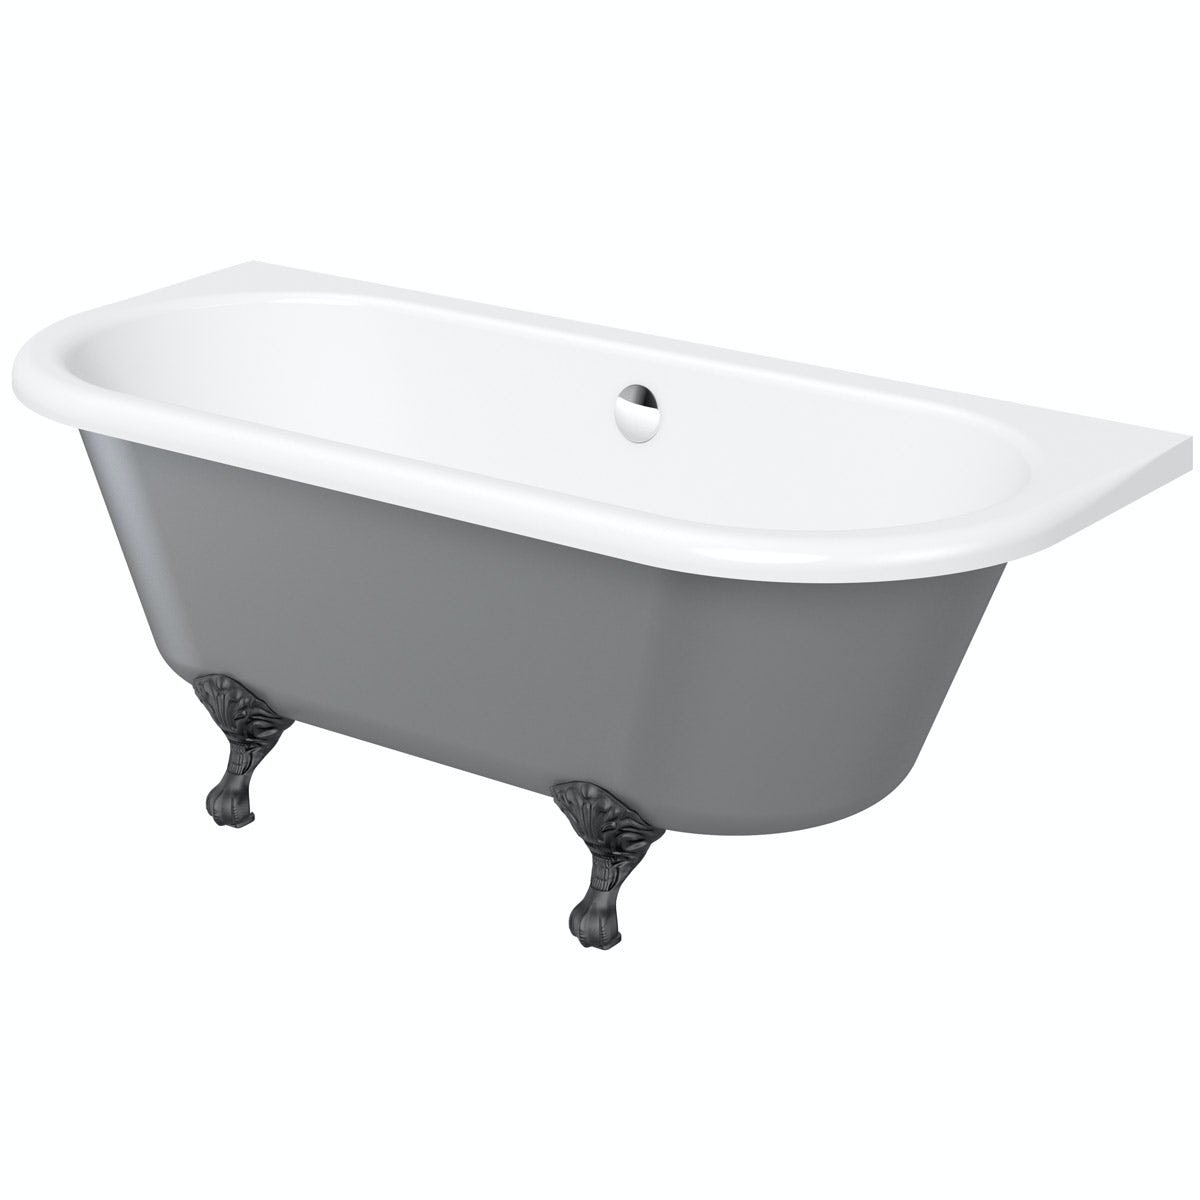 The Bath Co. Dulwich iron grey back to wall roll top bath with black ball and claw feet 1700 x 750